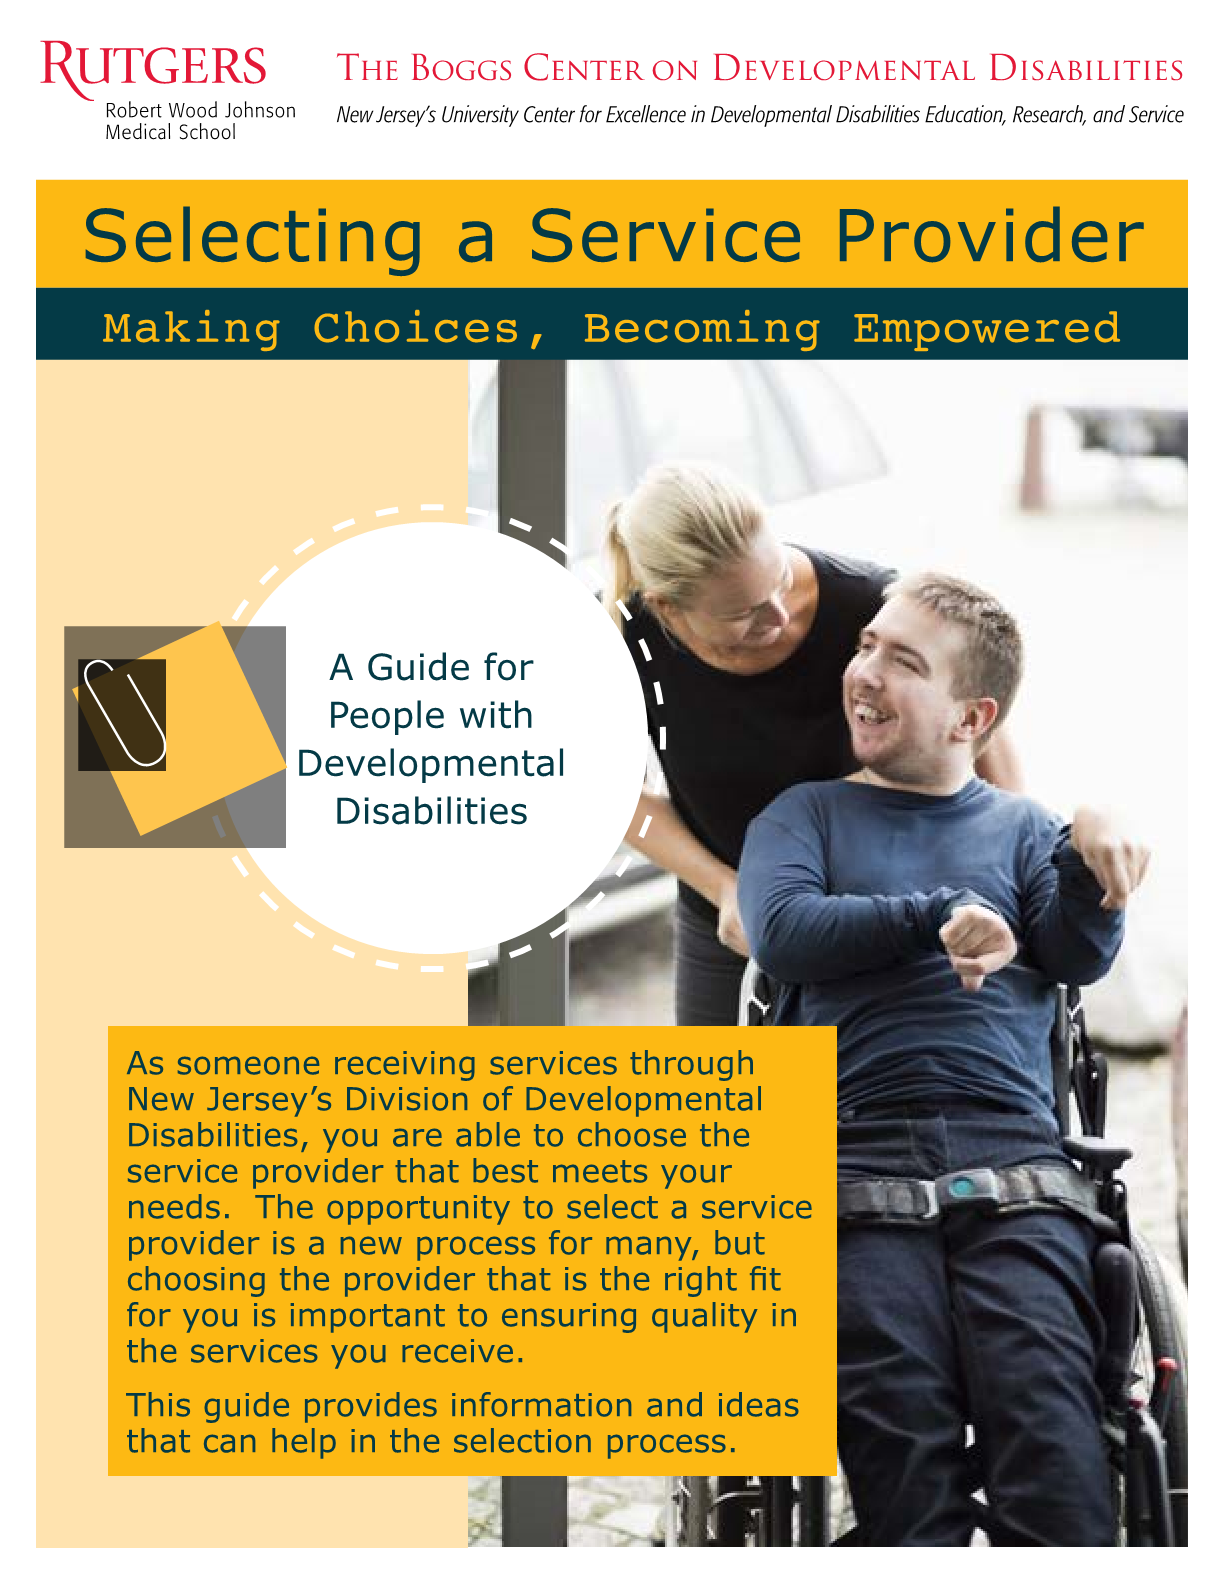 Selecting a Service Provider: Making Choices, Becoming Empowered